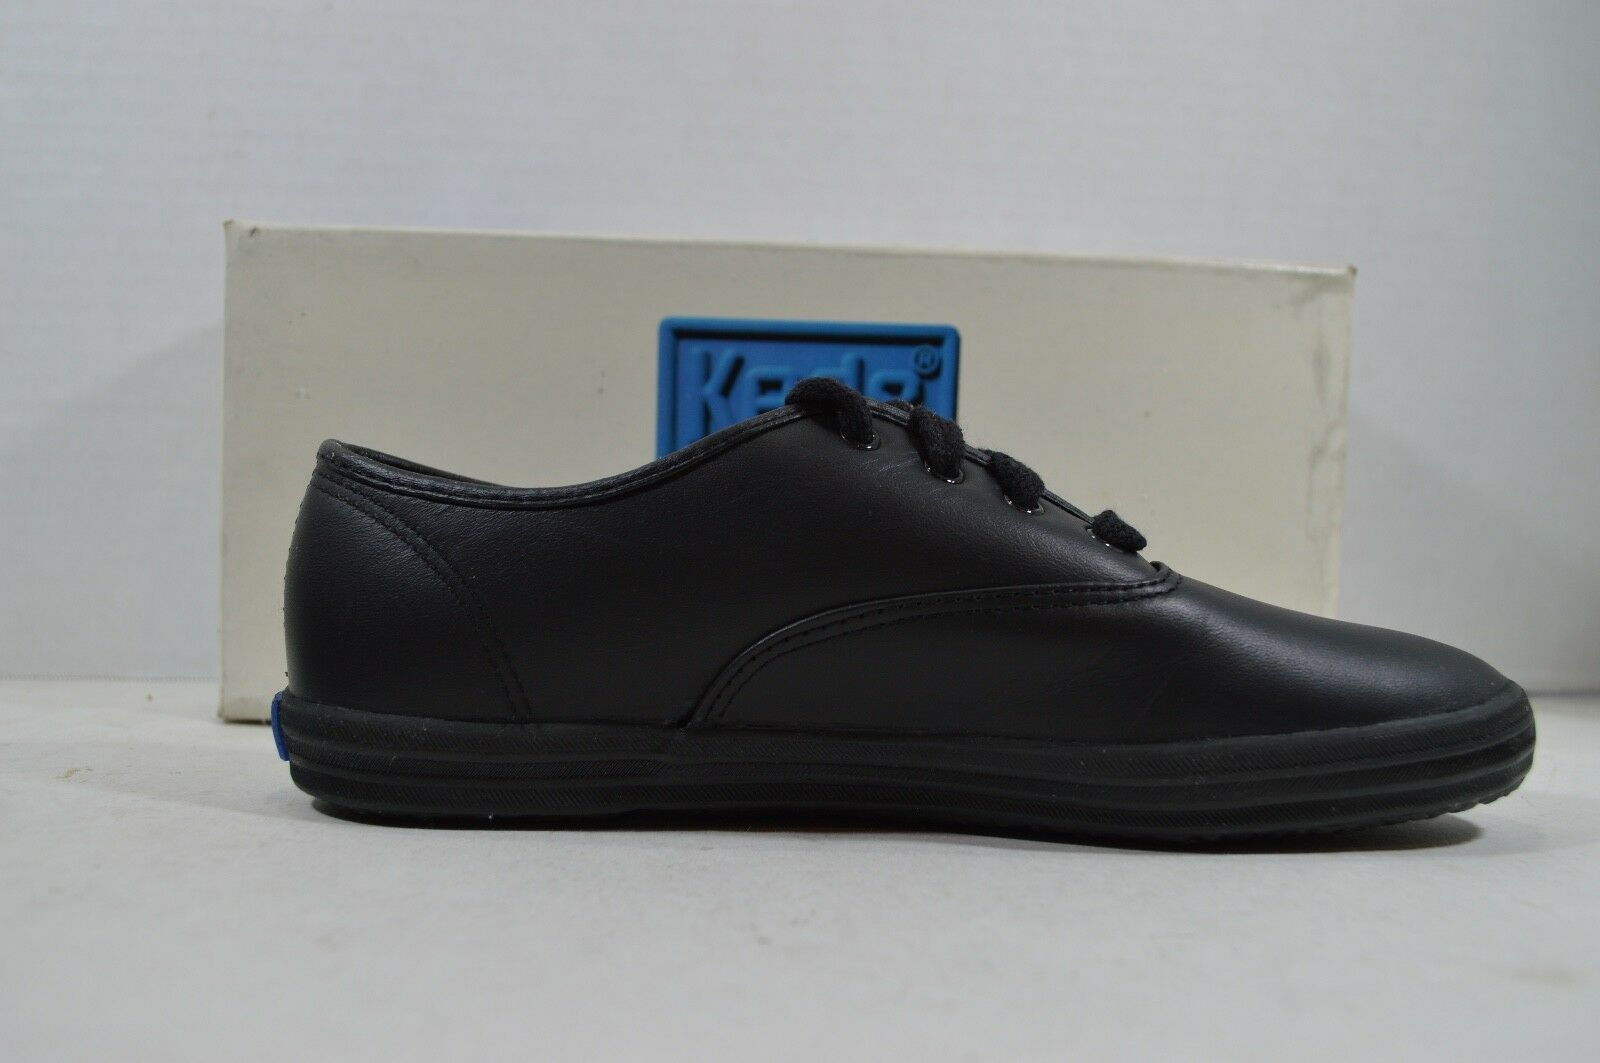 Vintage 90s Keds New Womens 6.5 Champion Leather Lace Up Walking Shoes Black